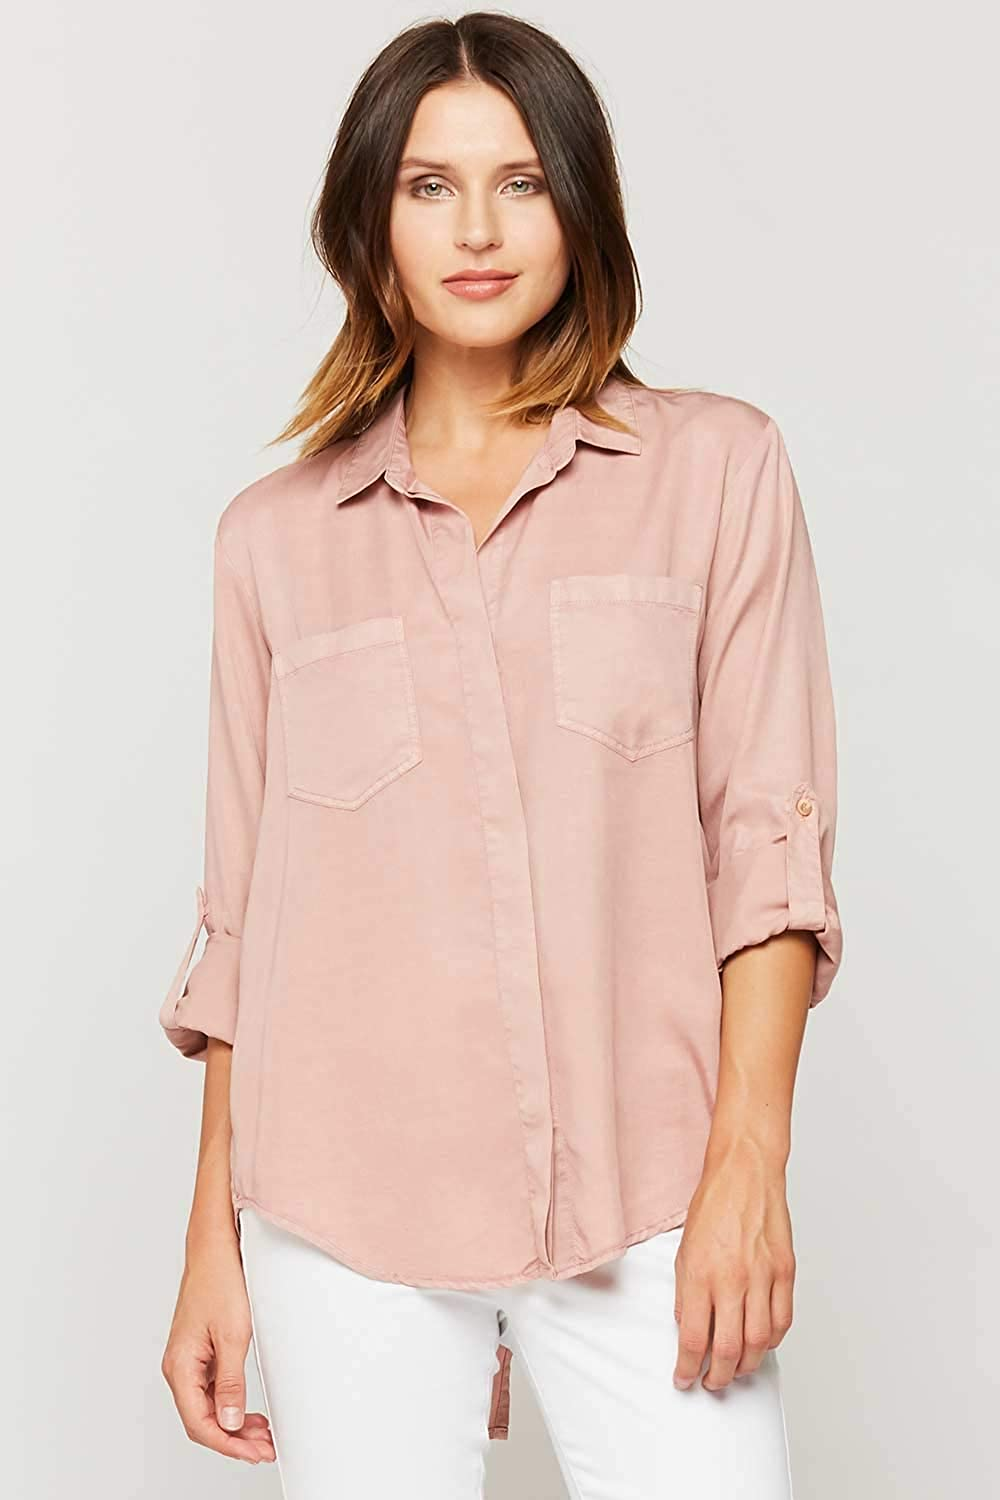 d9c9a9f7772 VELVET HEART 'Riley' Women's Button Down Chambray Shirt, Front Pockets at  Amazon Women's Clothing store: